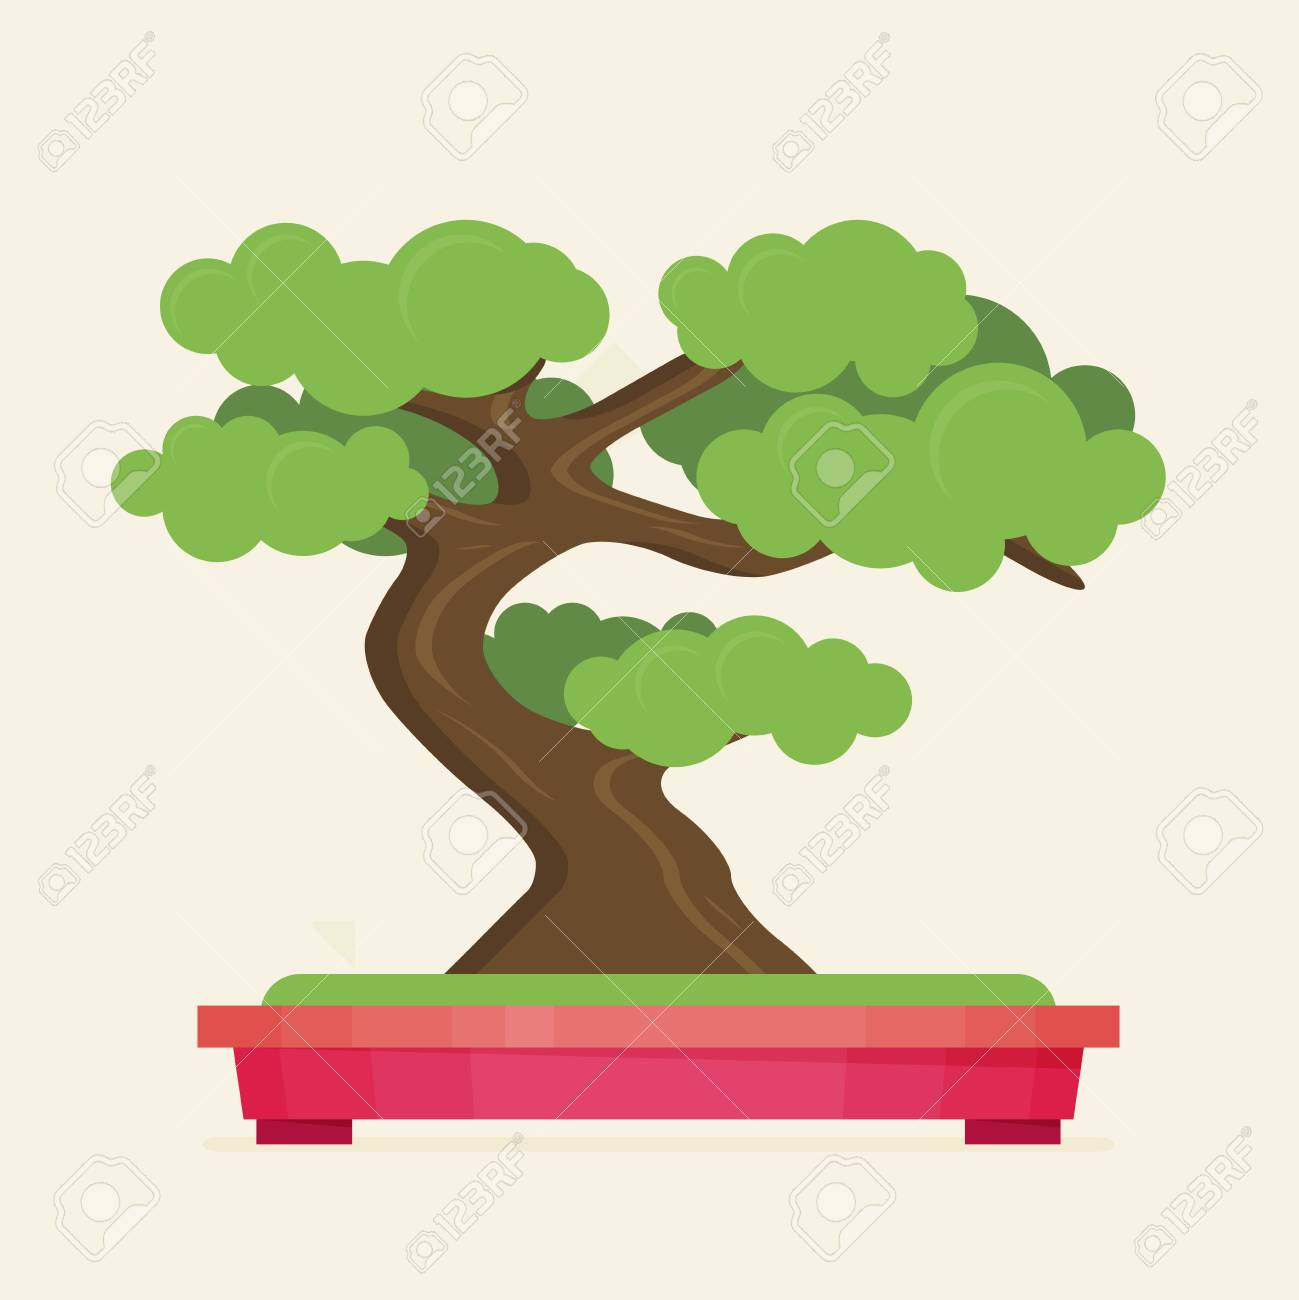 Vector Illustration Of Bonsai Tree Royalty Free Cliparts Vectors And Stock Illustration Image 65224916